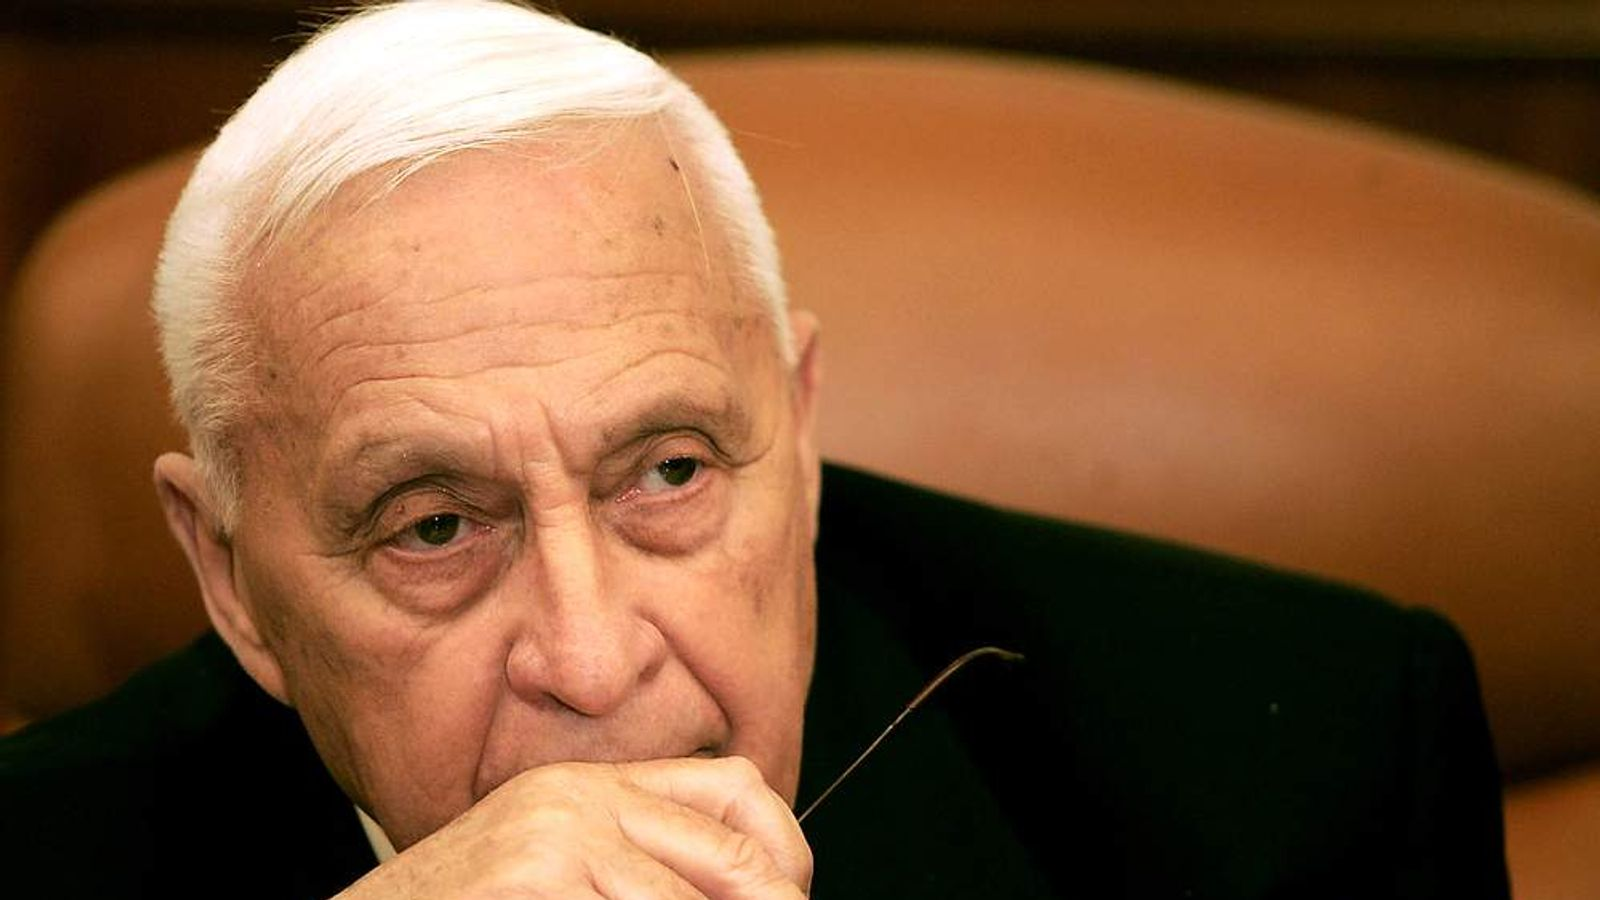 Israeli Prime Minister Ariel Sharon looks on during a ceremony completing the sale of Bank Leumi to a private U.S. investment group